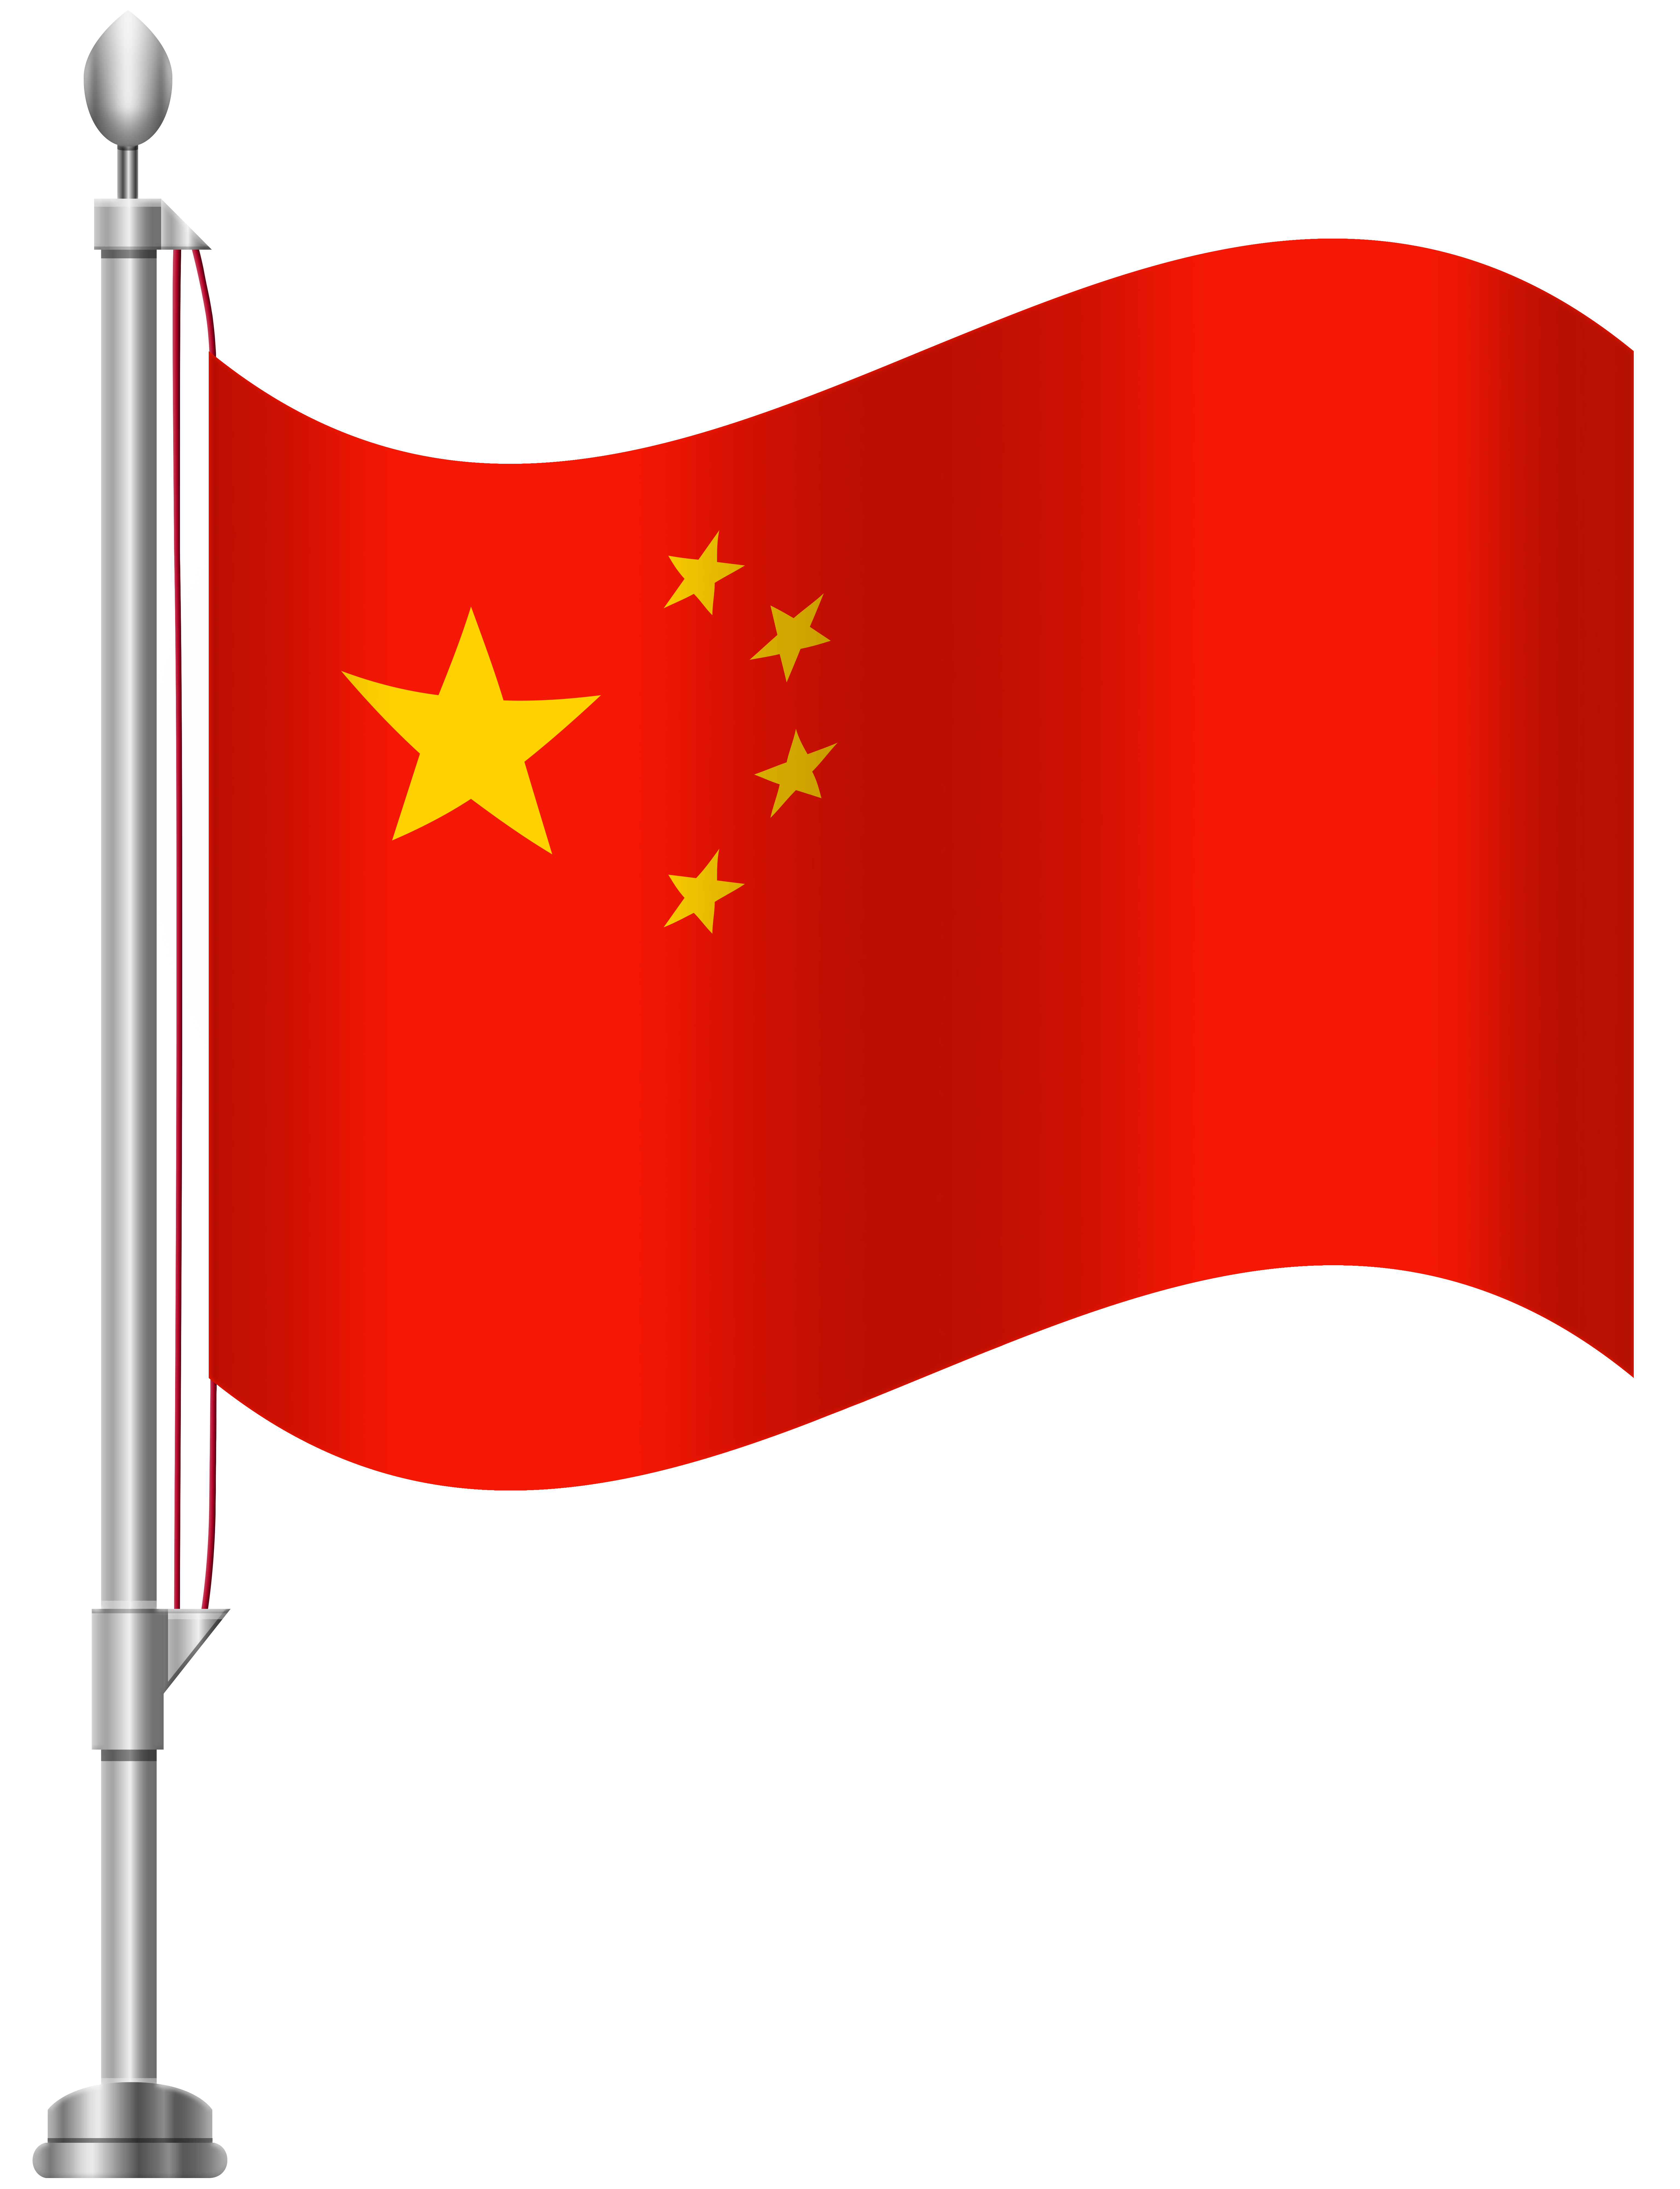 6141x8000 Neoteric Design Inspiration China Clipart Flag Png Clip Art Best